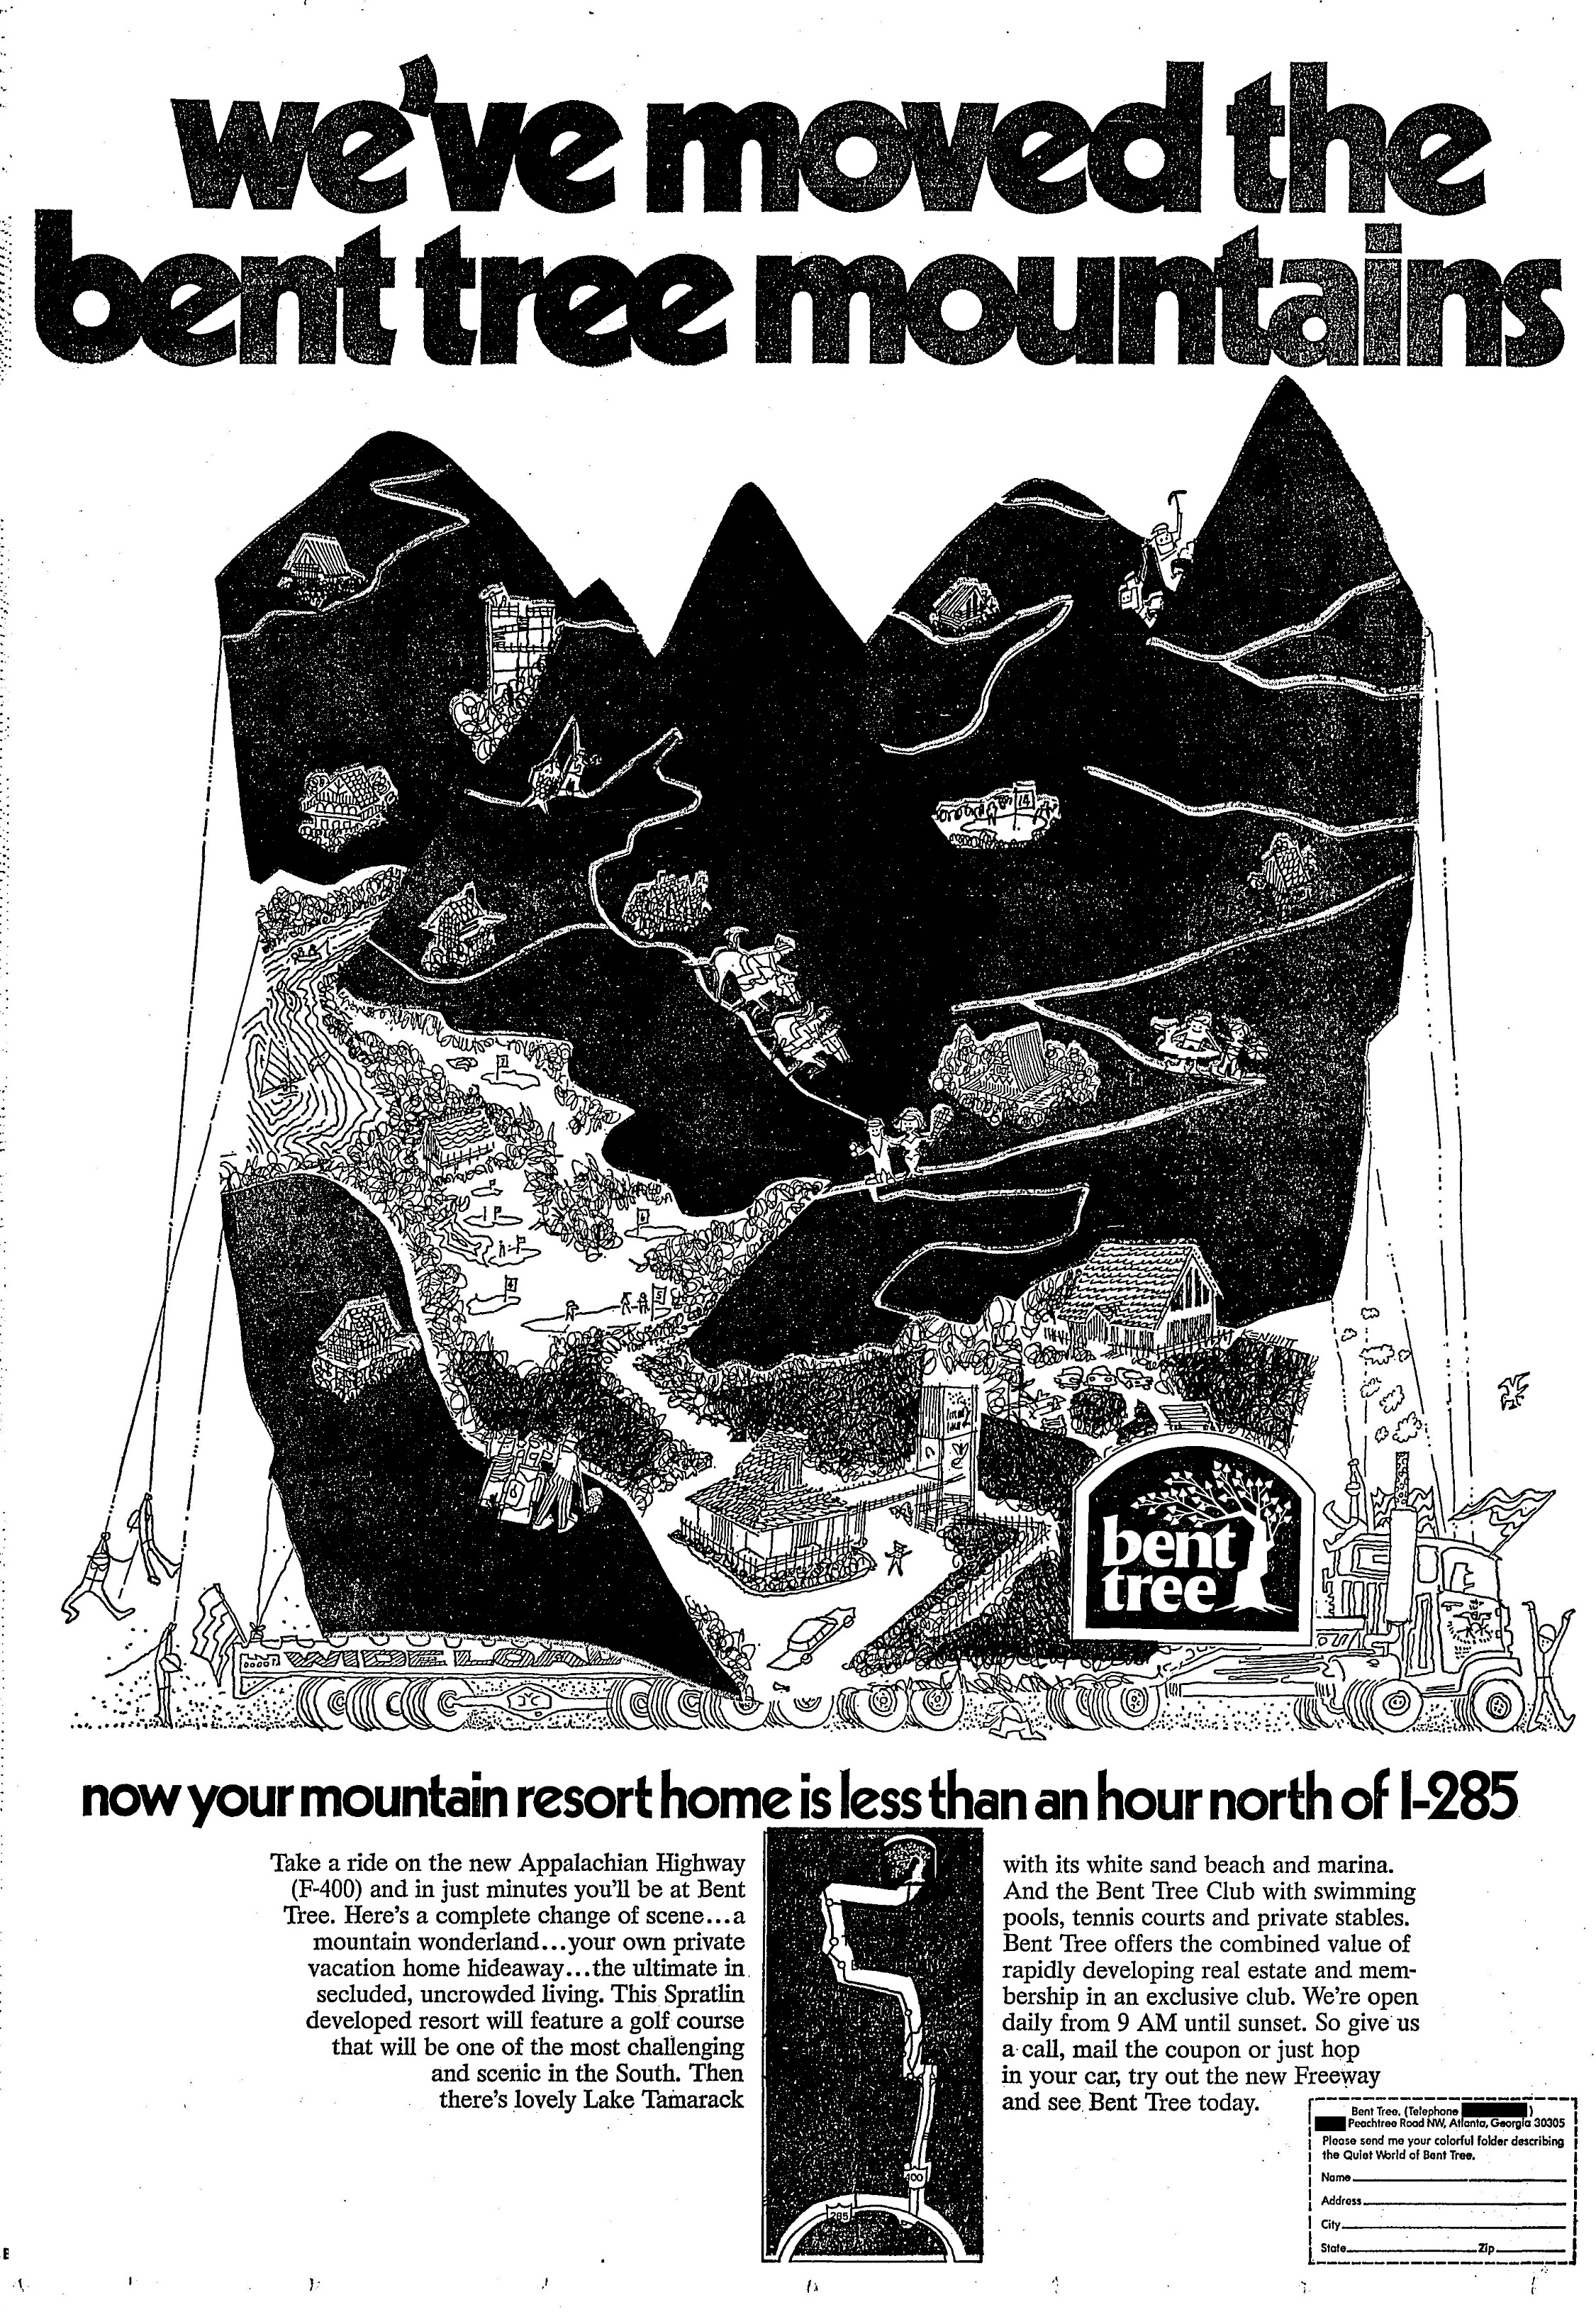 1971 ad for Bent Tree